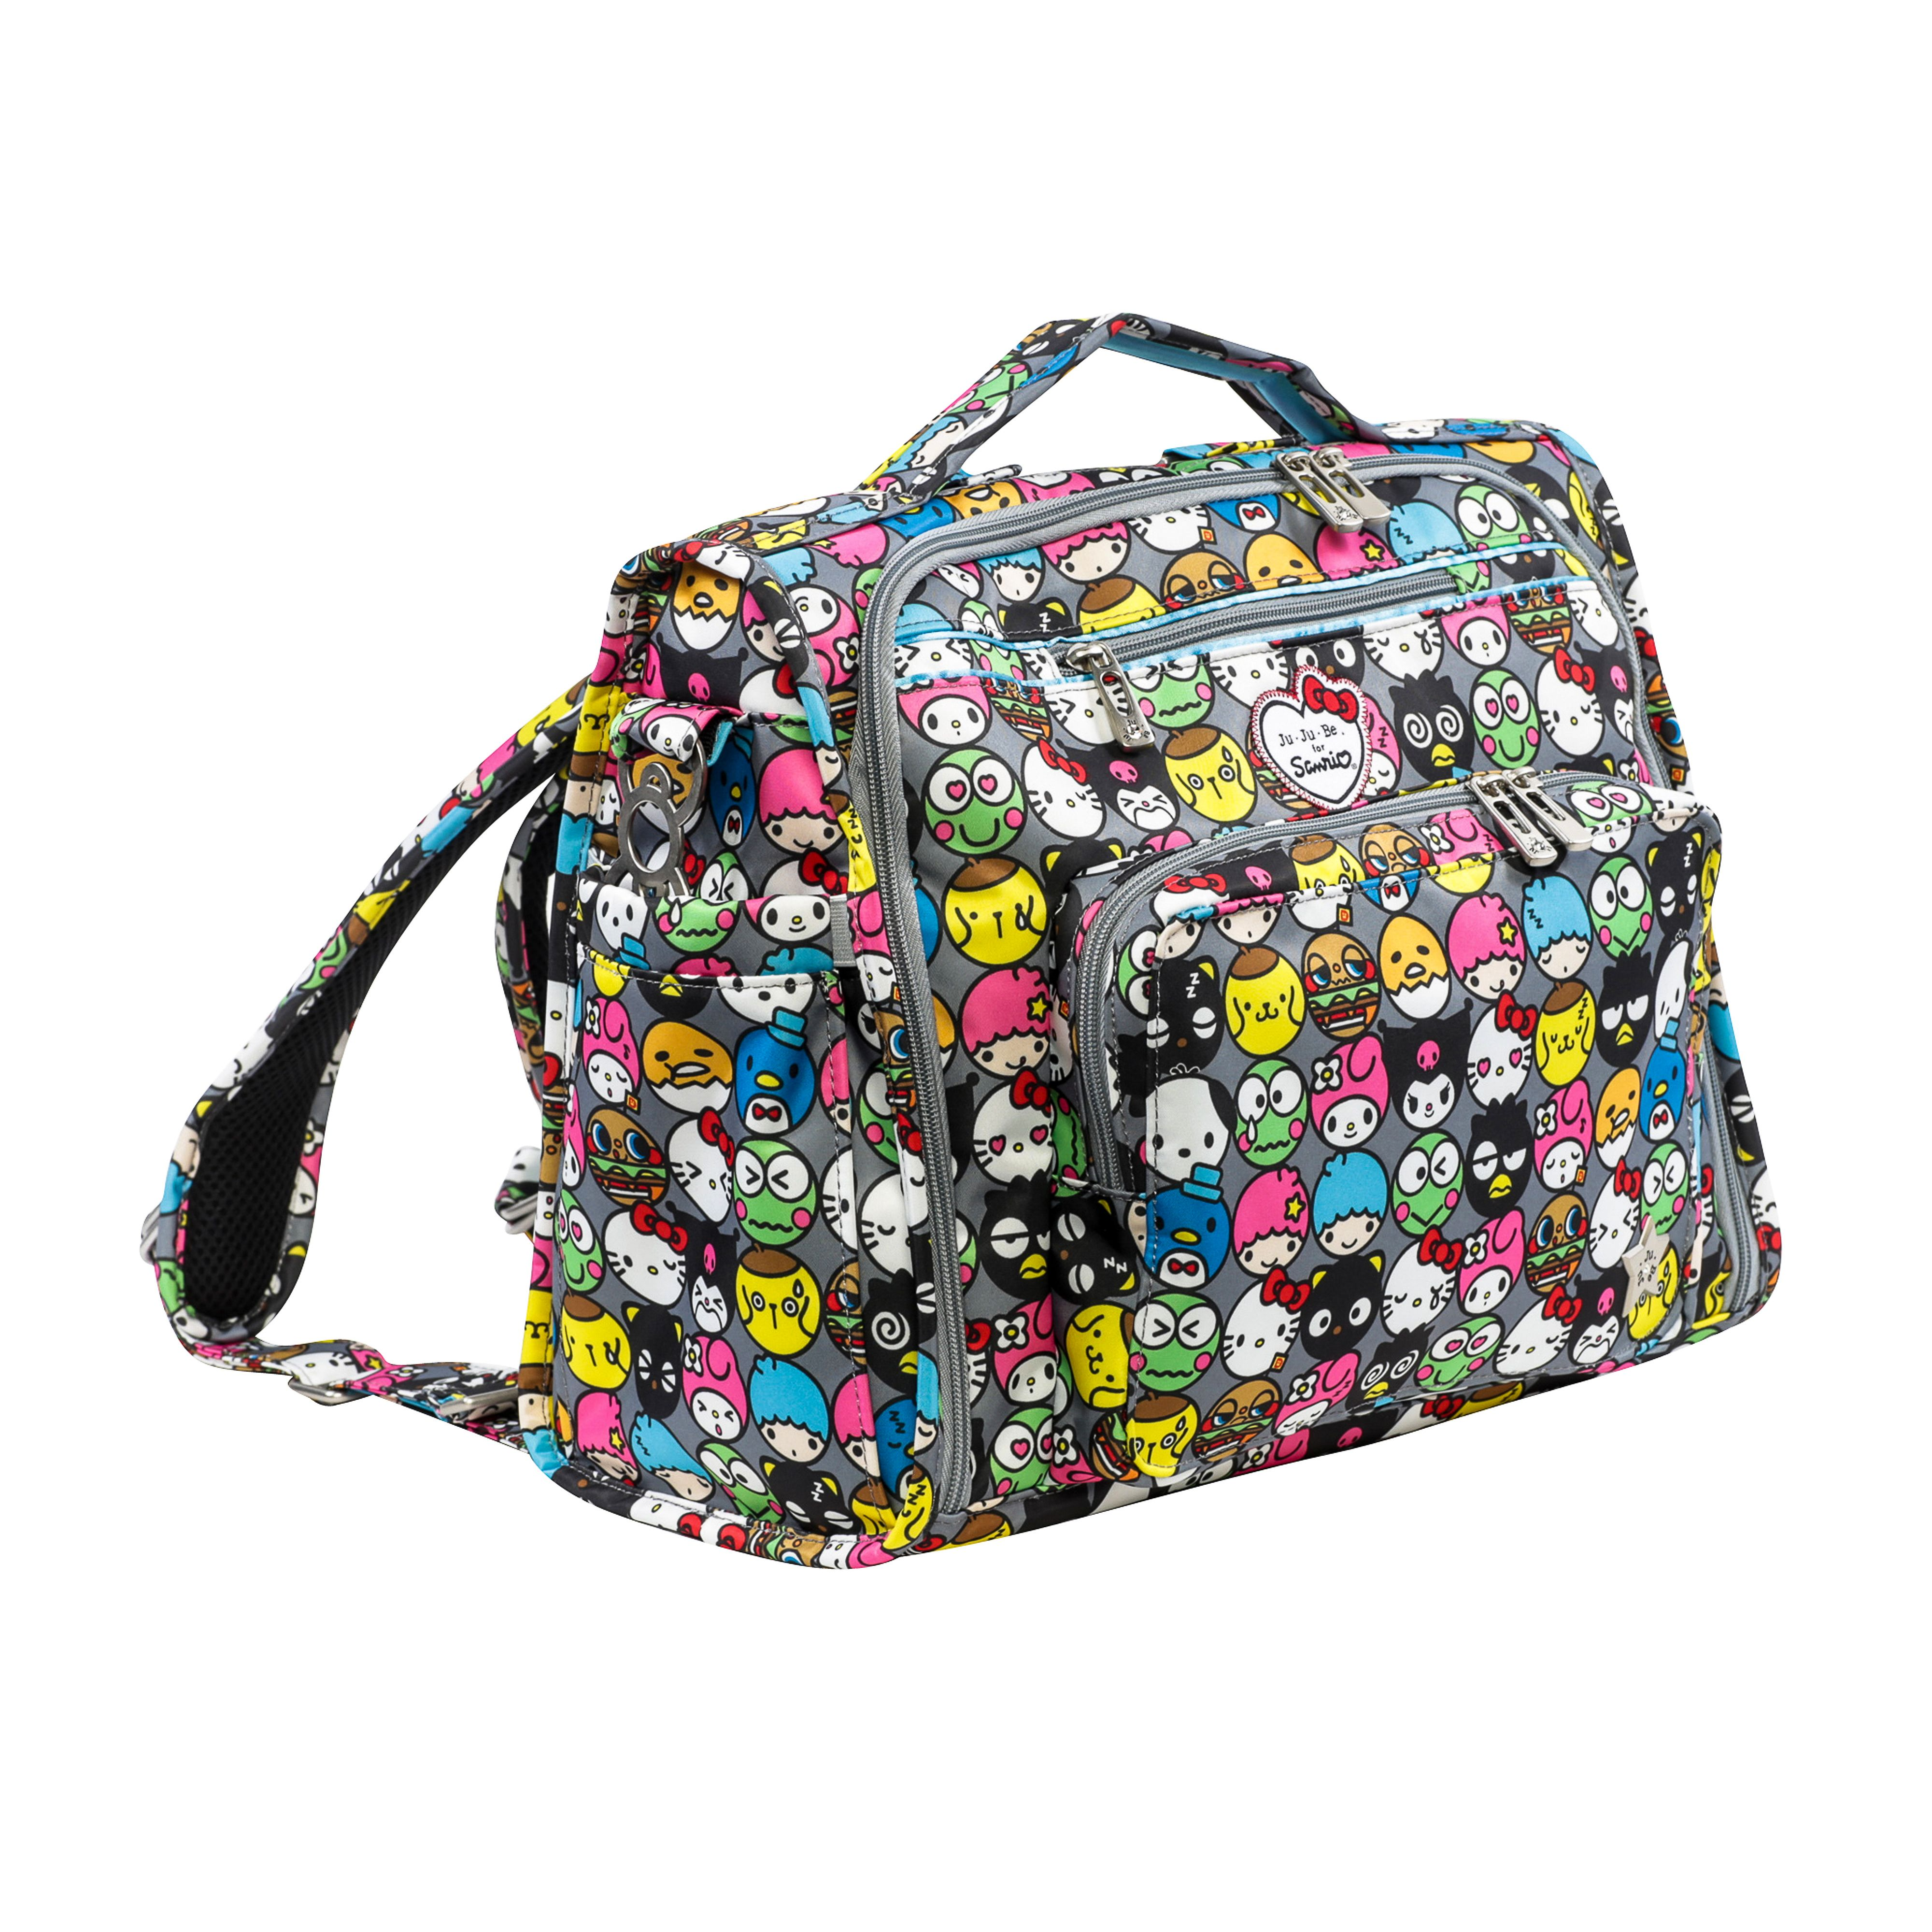 5e15818ec5 Ju-Ju-Be for Hello Kitty  B.F.F. in Hello Friends € 174.95   £ 145.00.~  Machine washable diaper bag to exceed all your needs as a mom. B.F.F. This  bag will ...